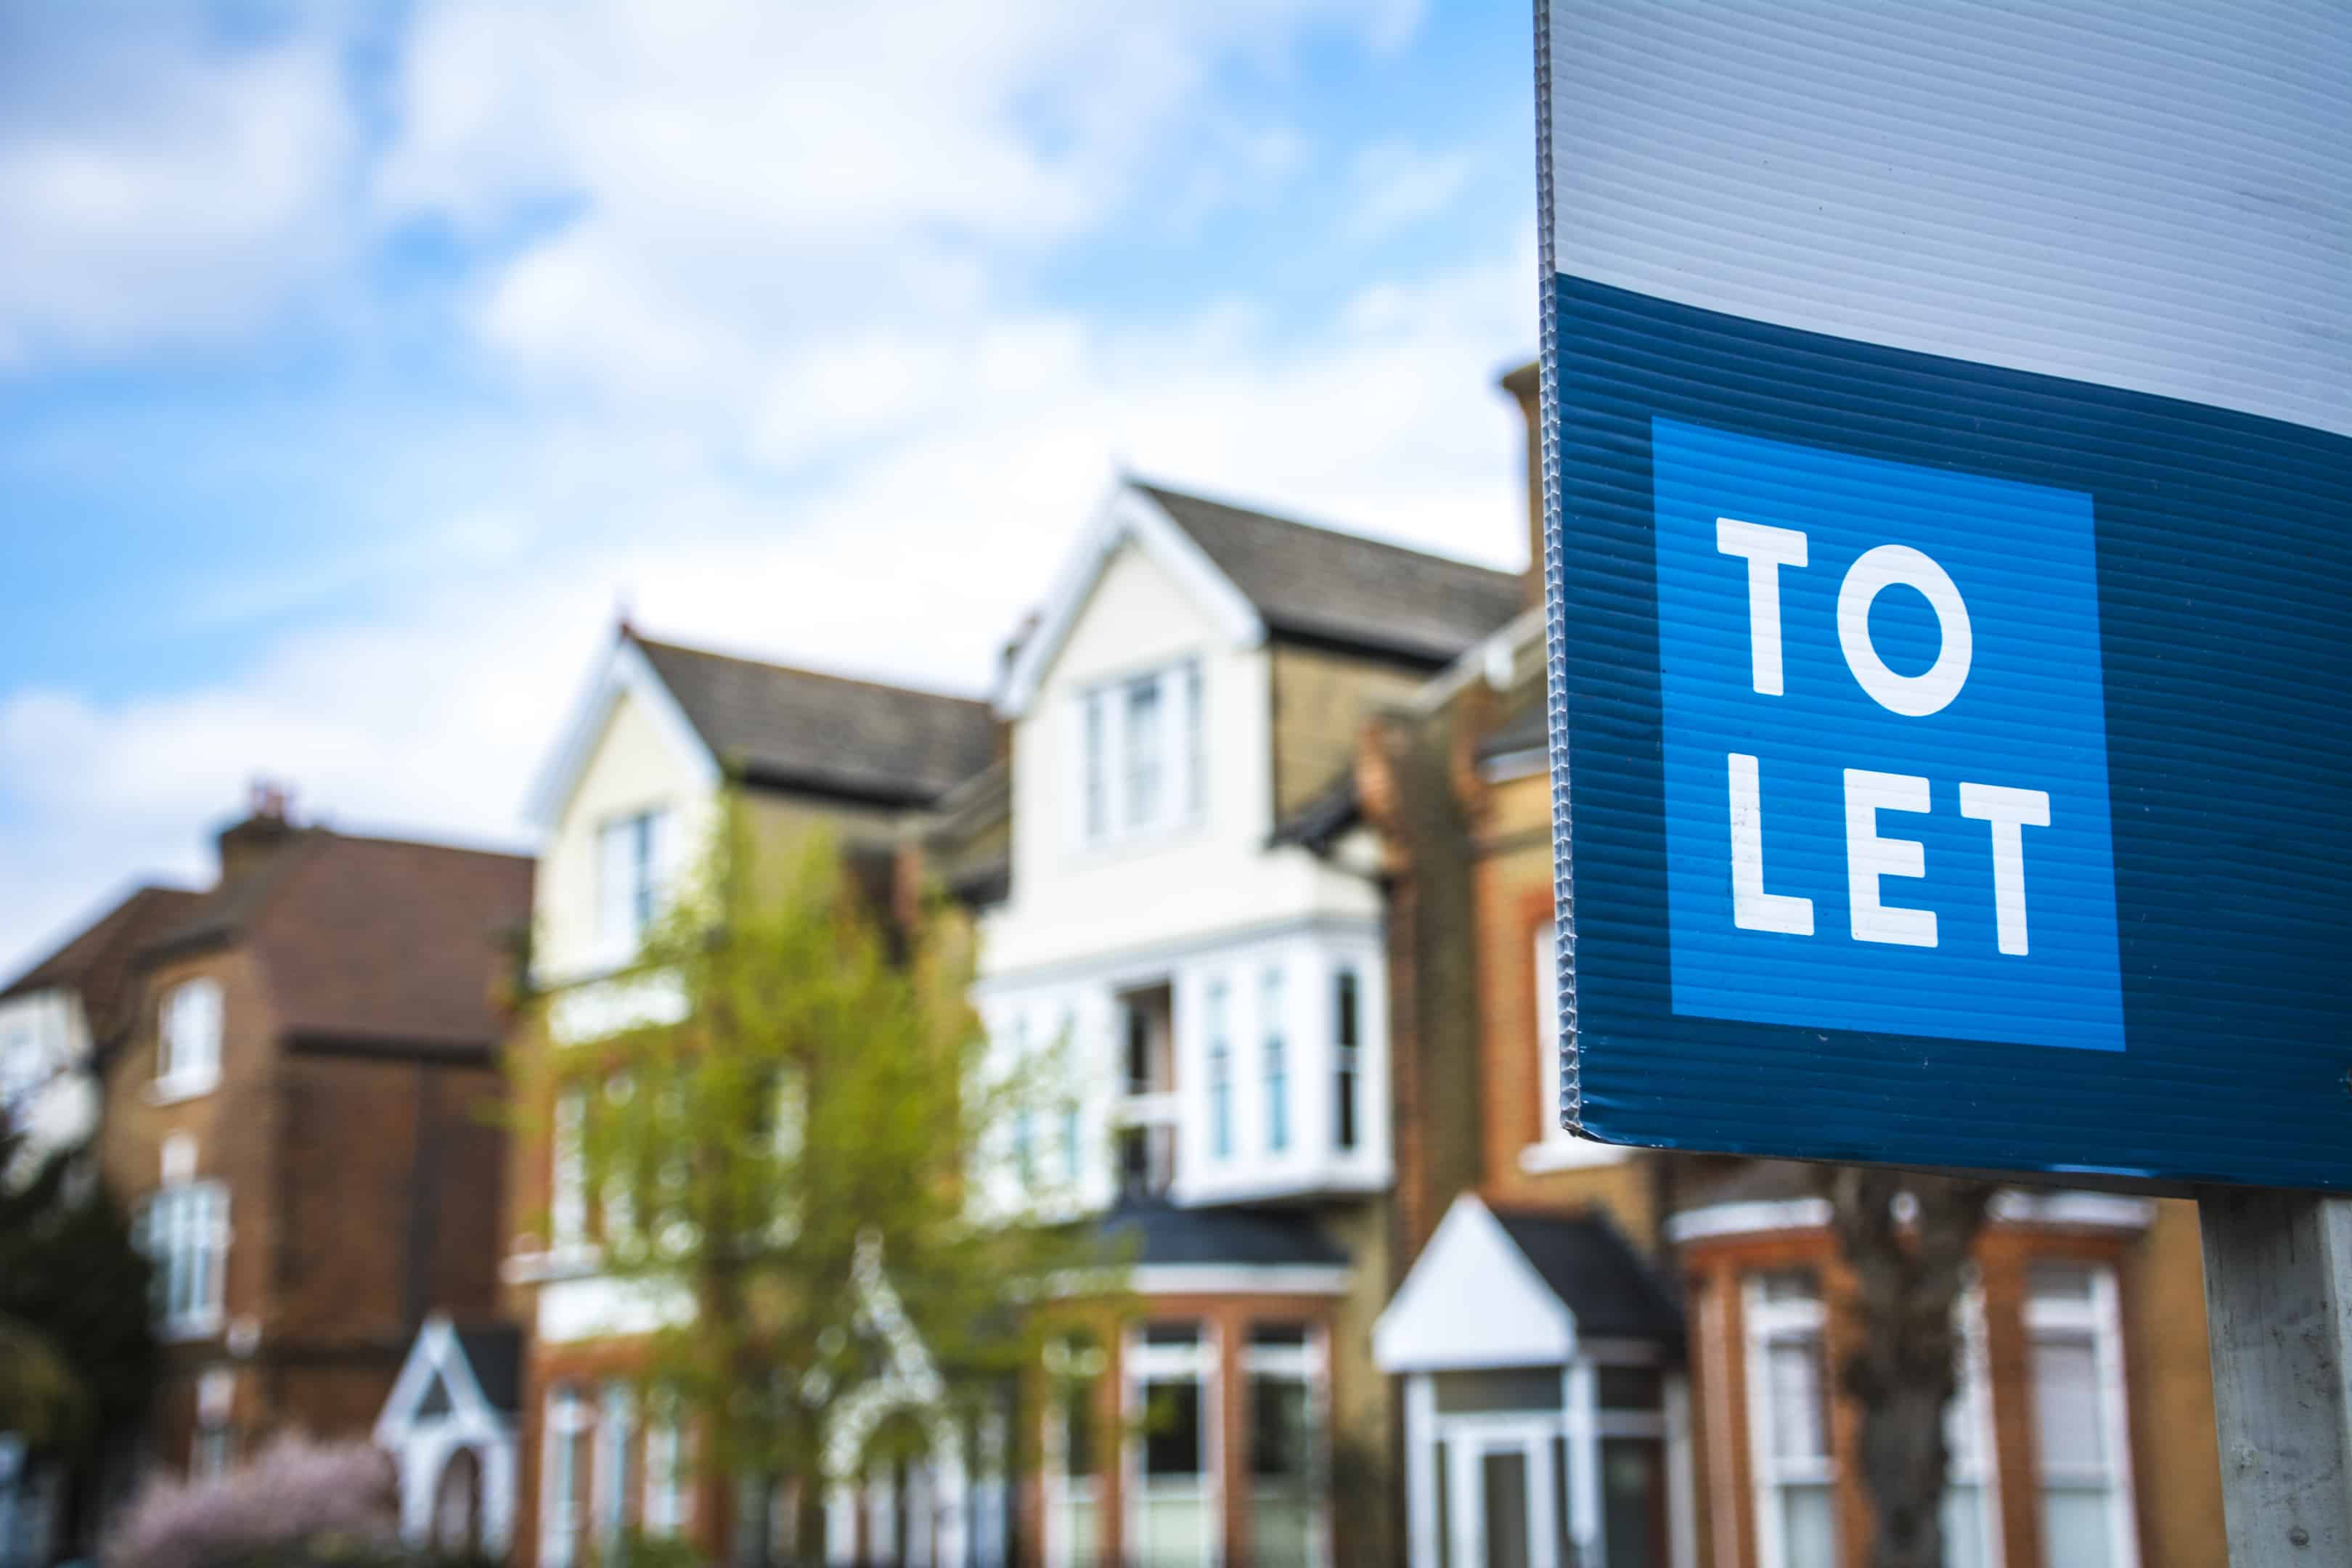 The safe way to verify new tenants in seconds